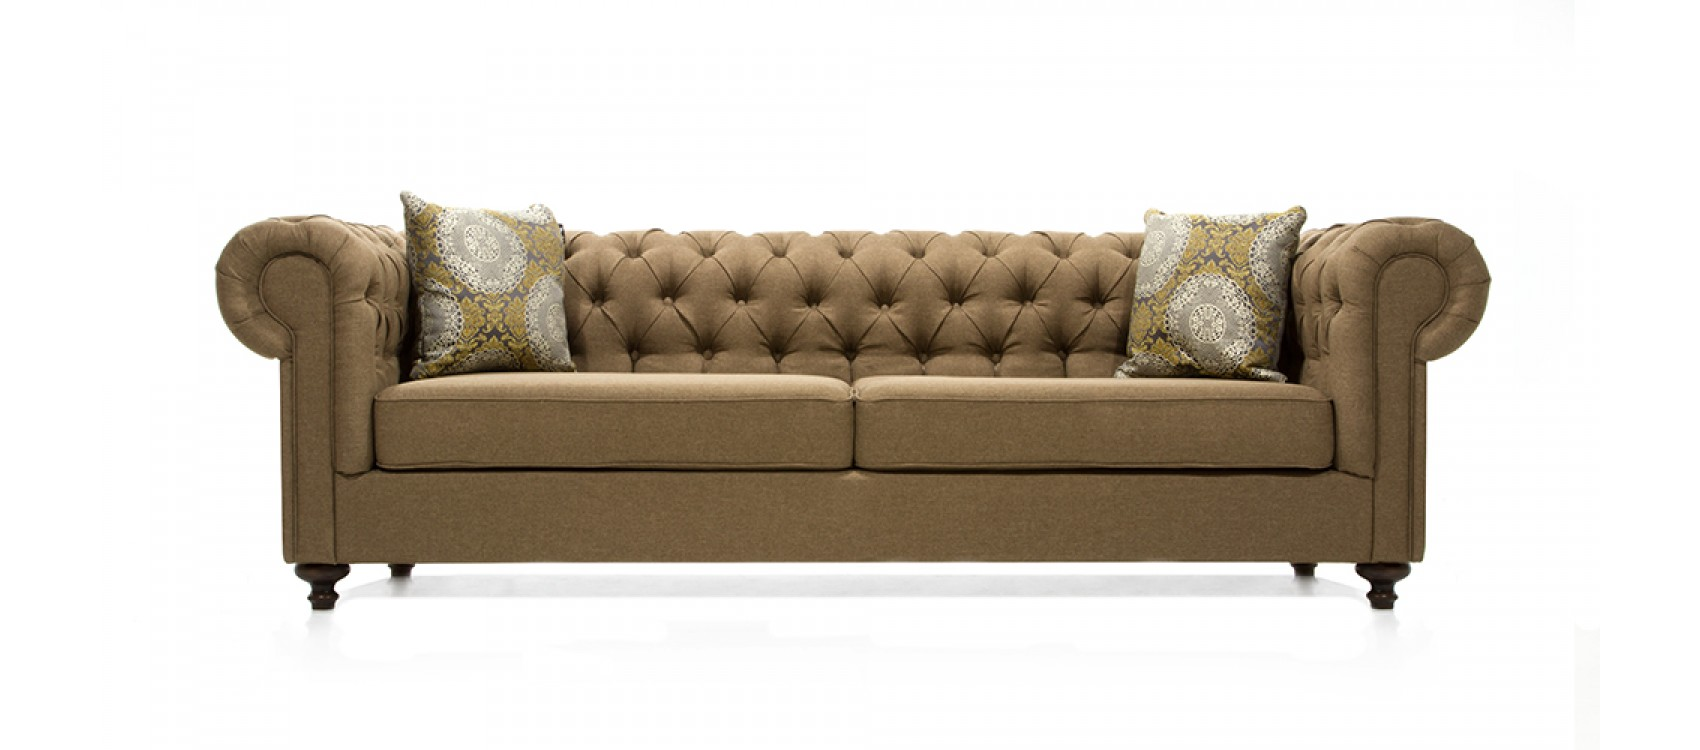 Sofa CHESTER  3 SEATER صور 4